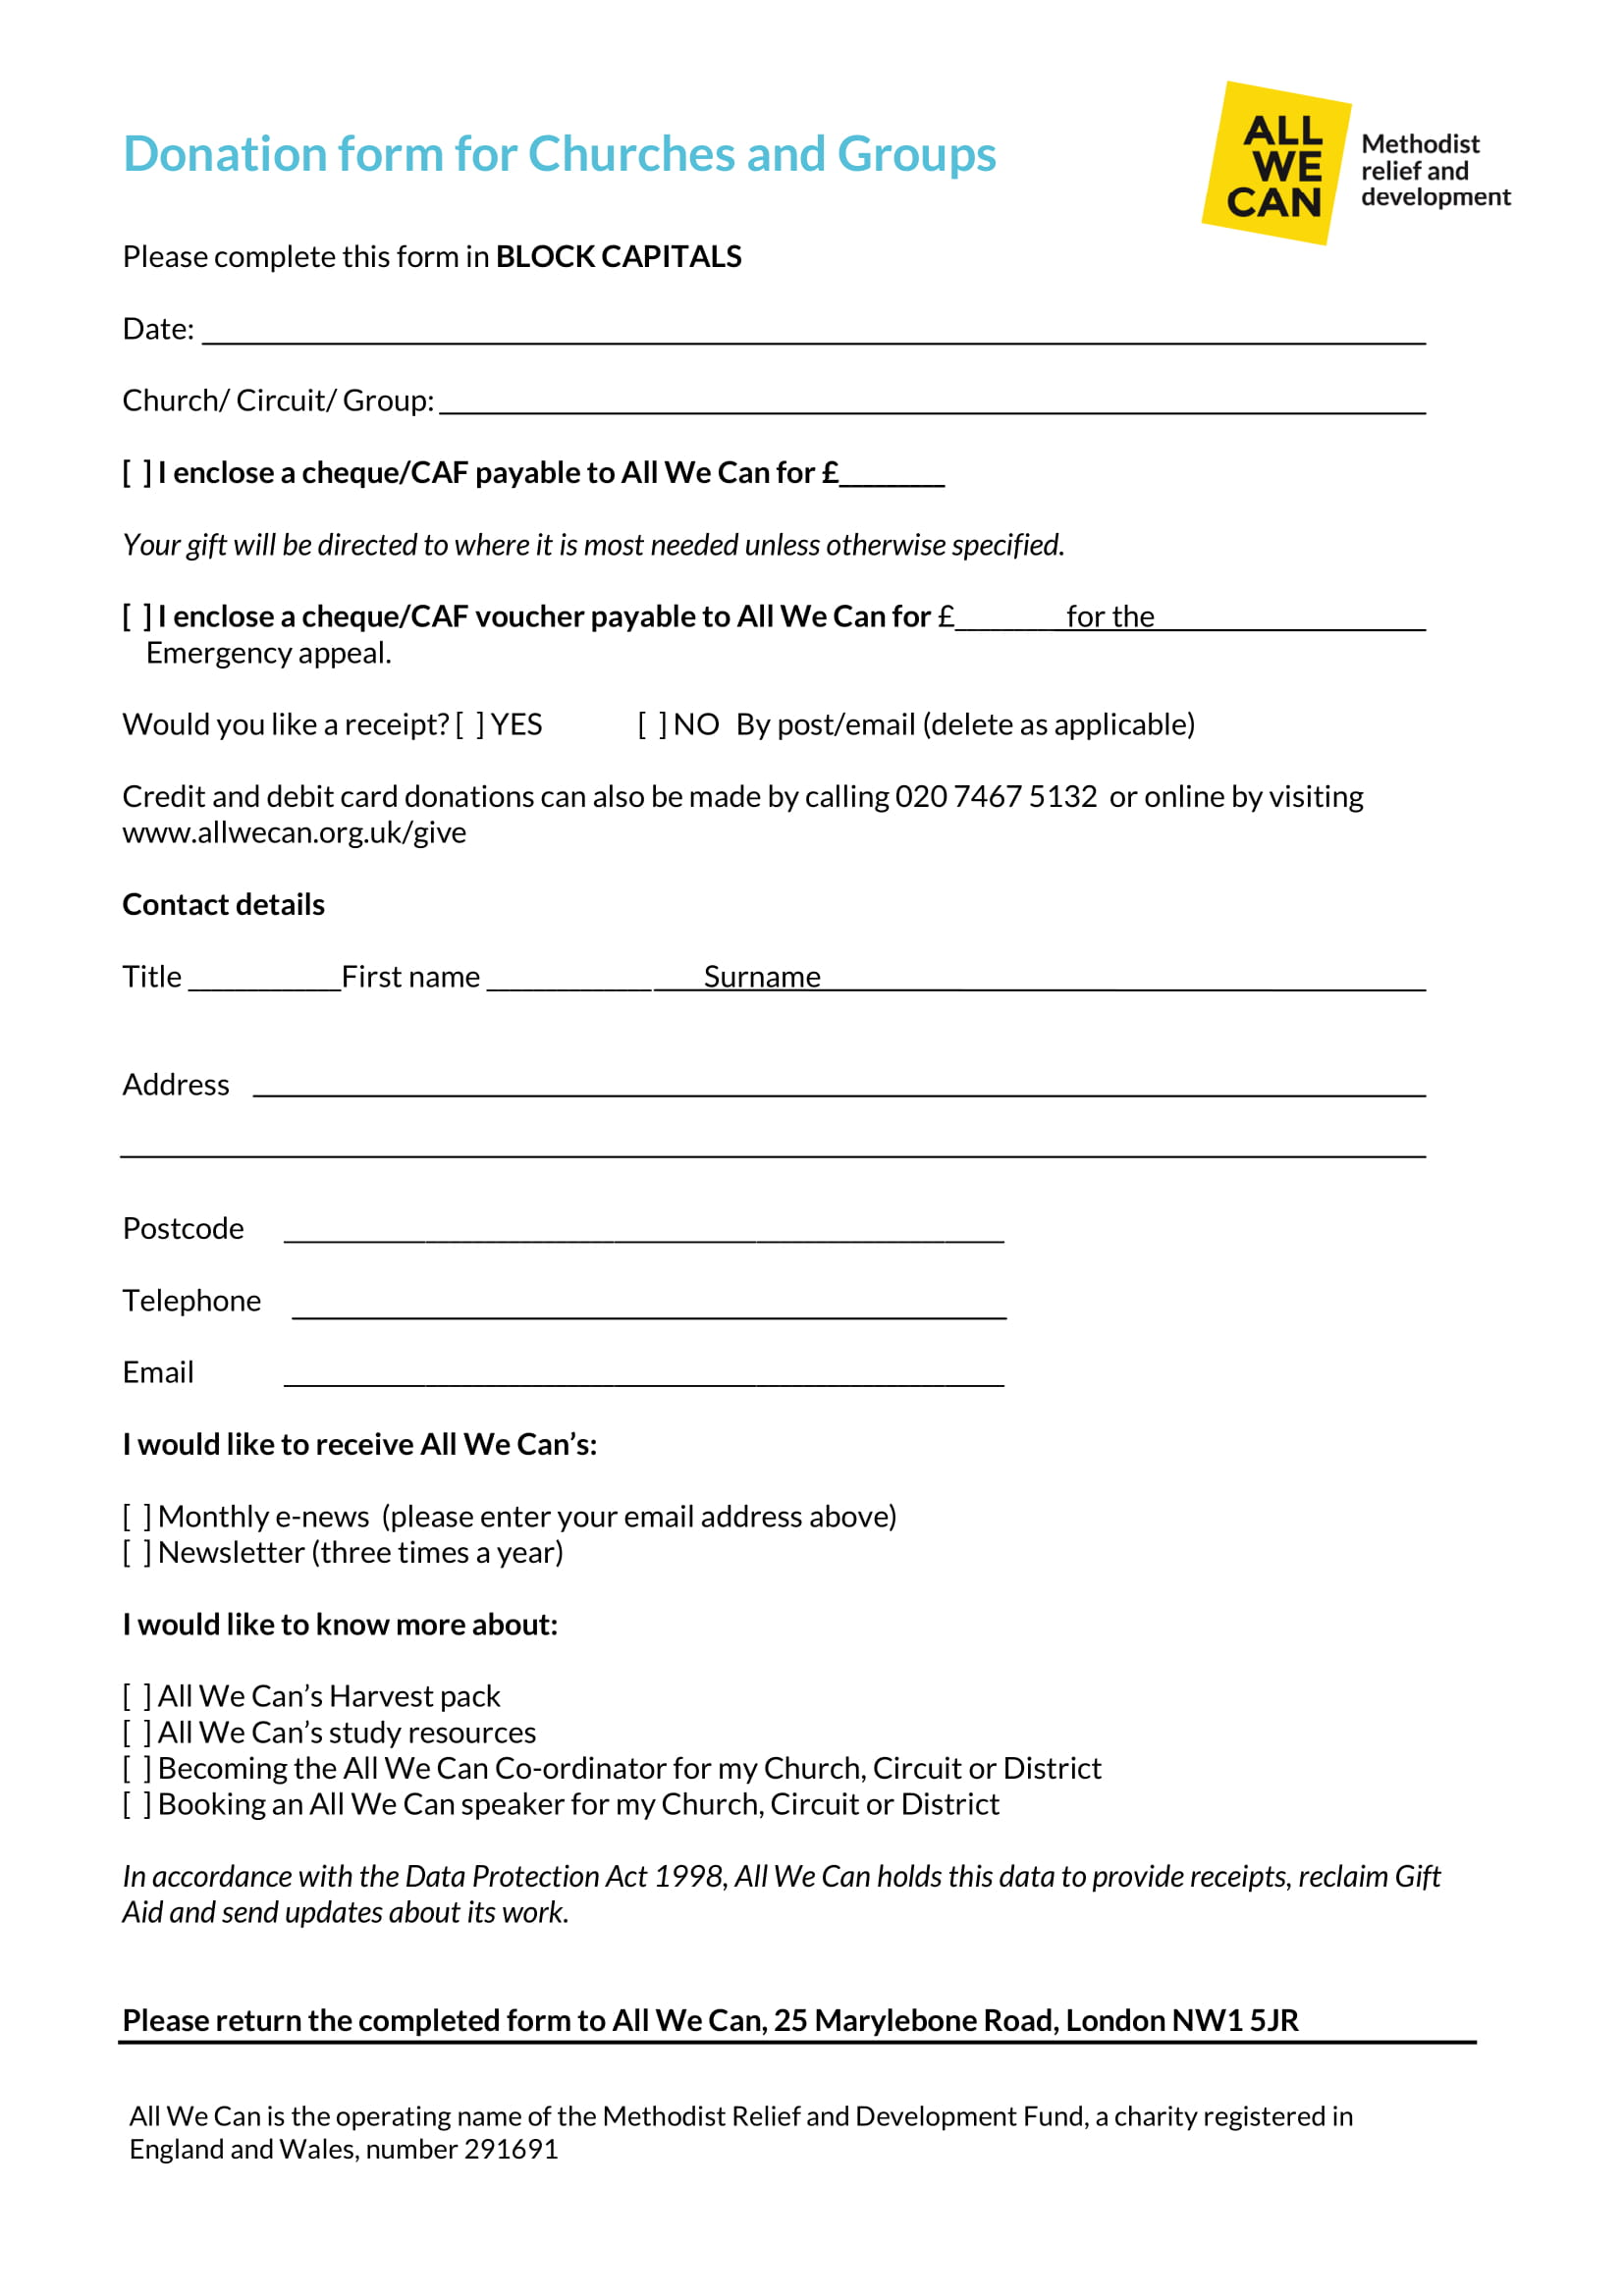 church donation form sample - People.davidjoel.co